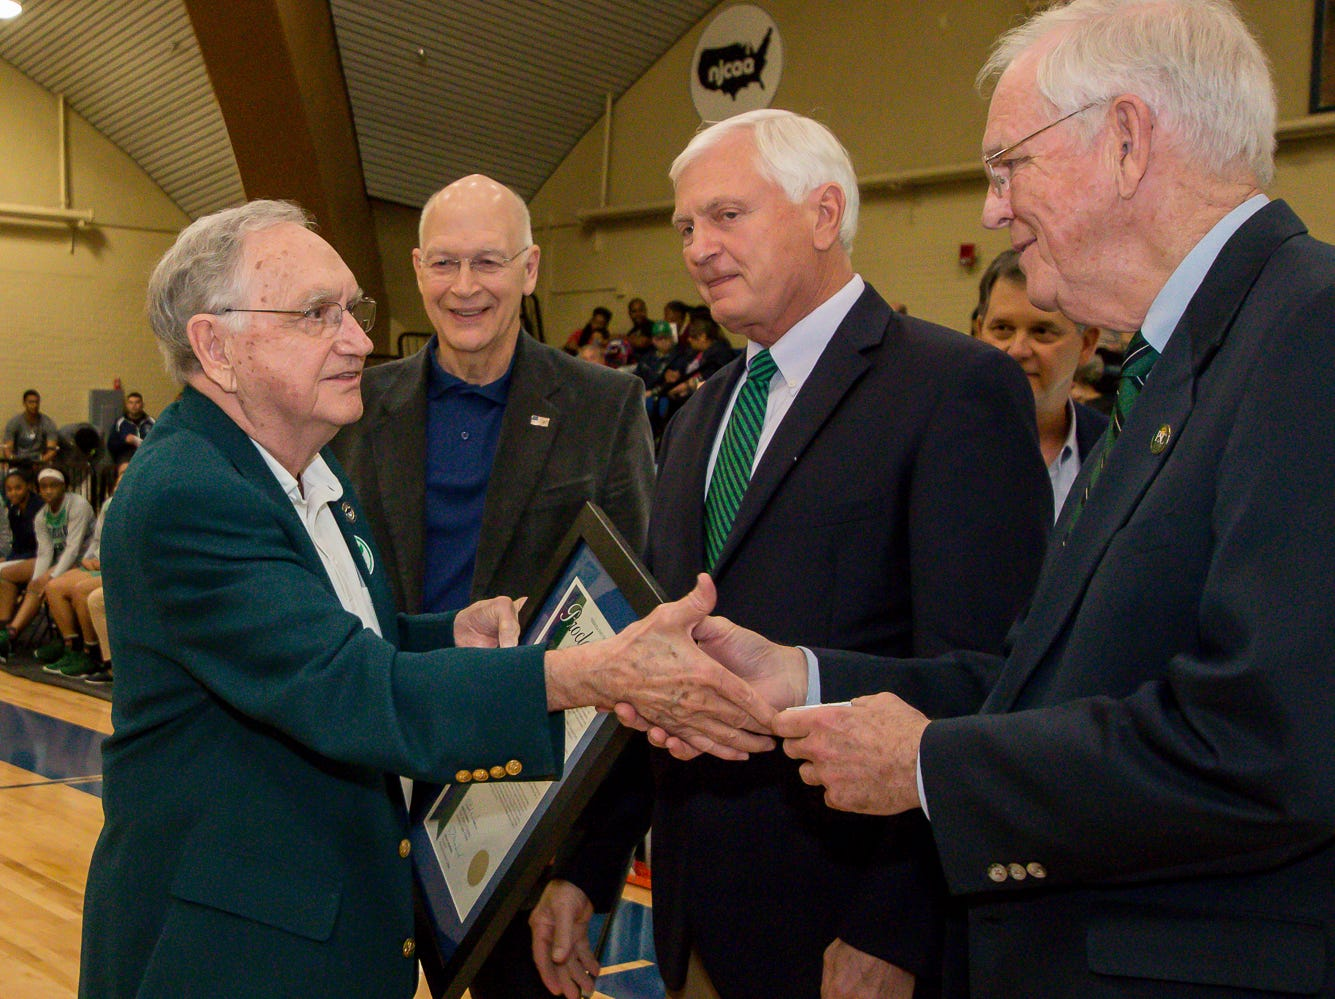 Gerald McArthur, left, accepts Pensacola State College's inaugural Athletics Hall of Fame awards for his late brother Gerald, who was a 1953 graduate of the college, on Saturday, February 16, 2019.